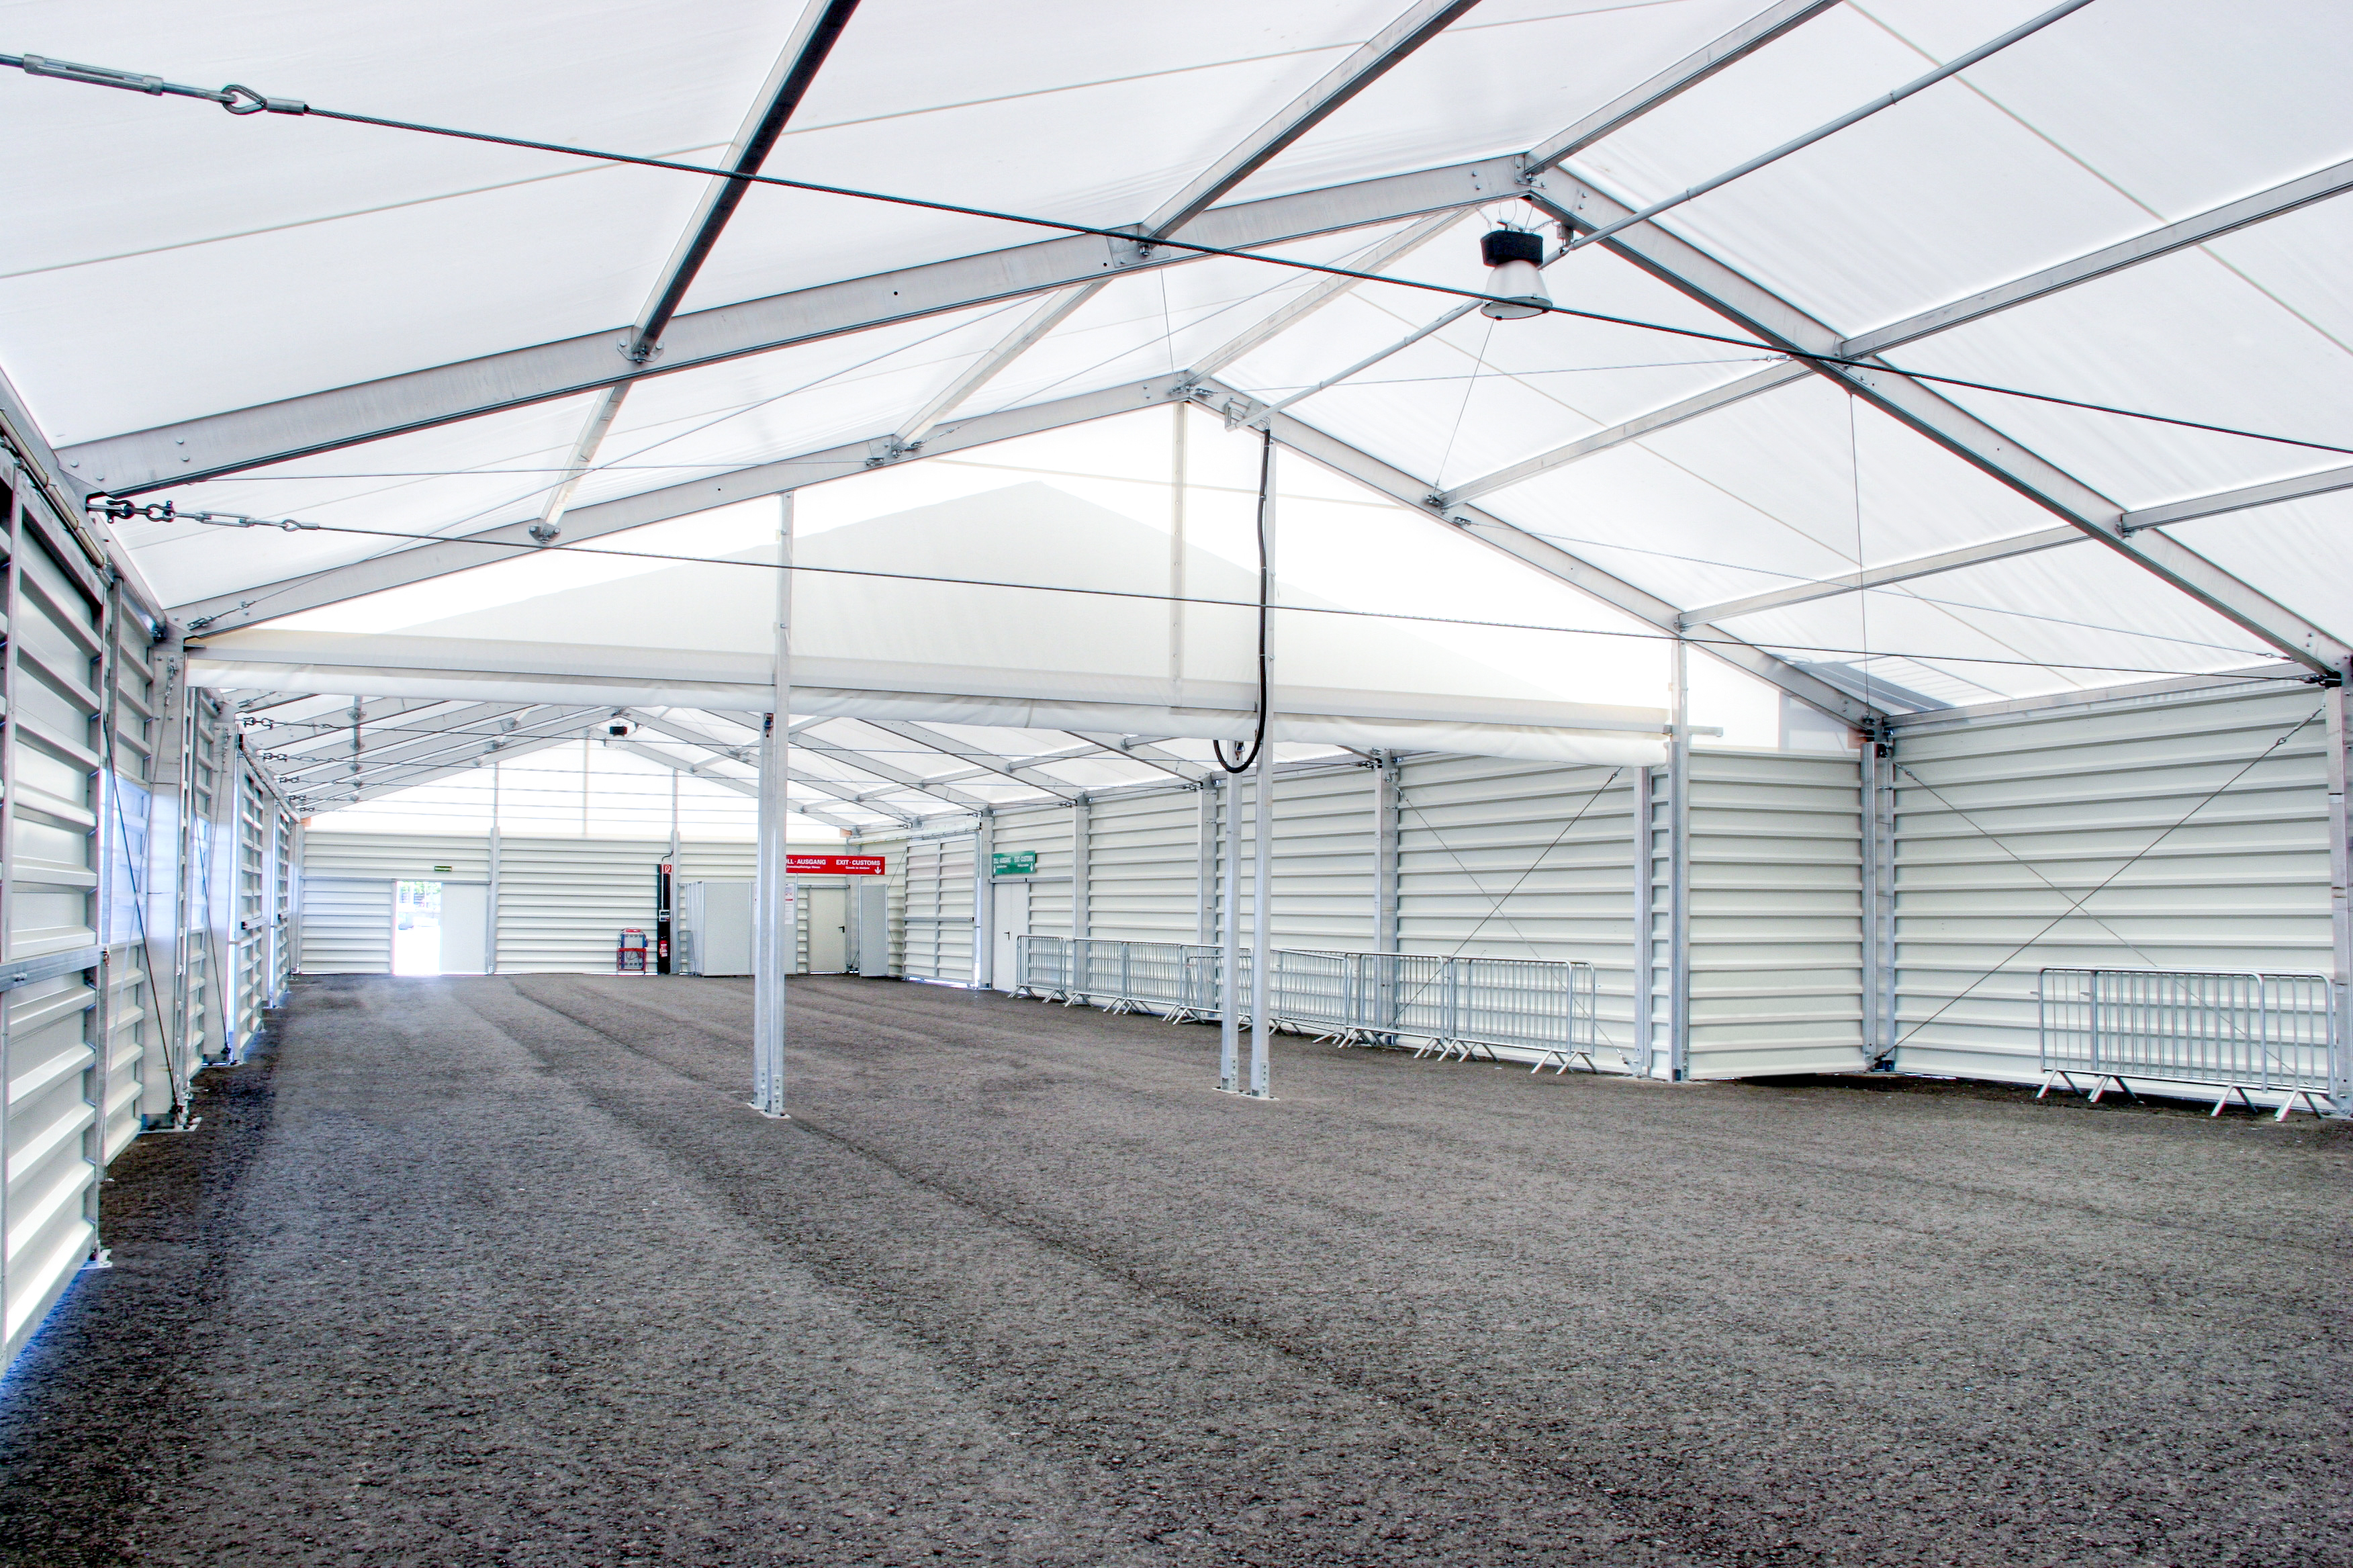 Insulated demountable building with added ceiling